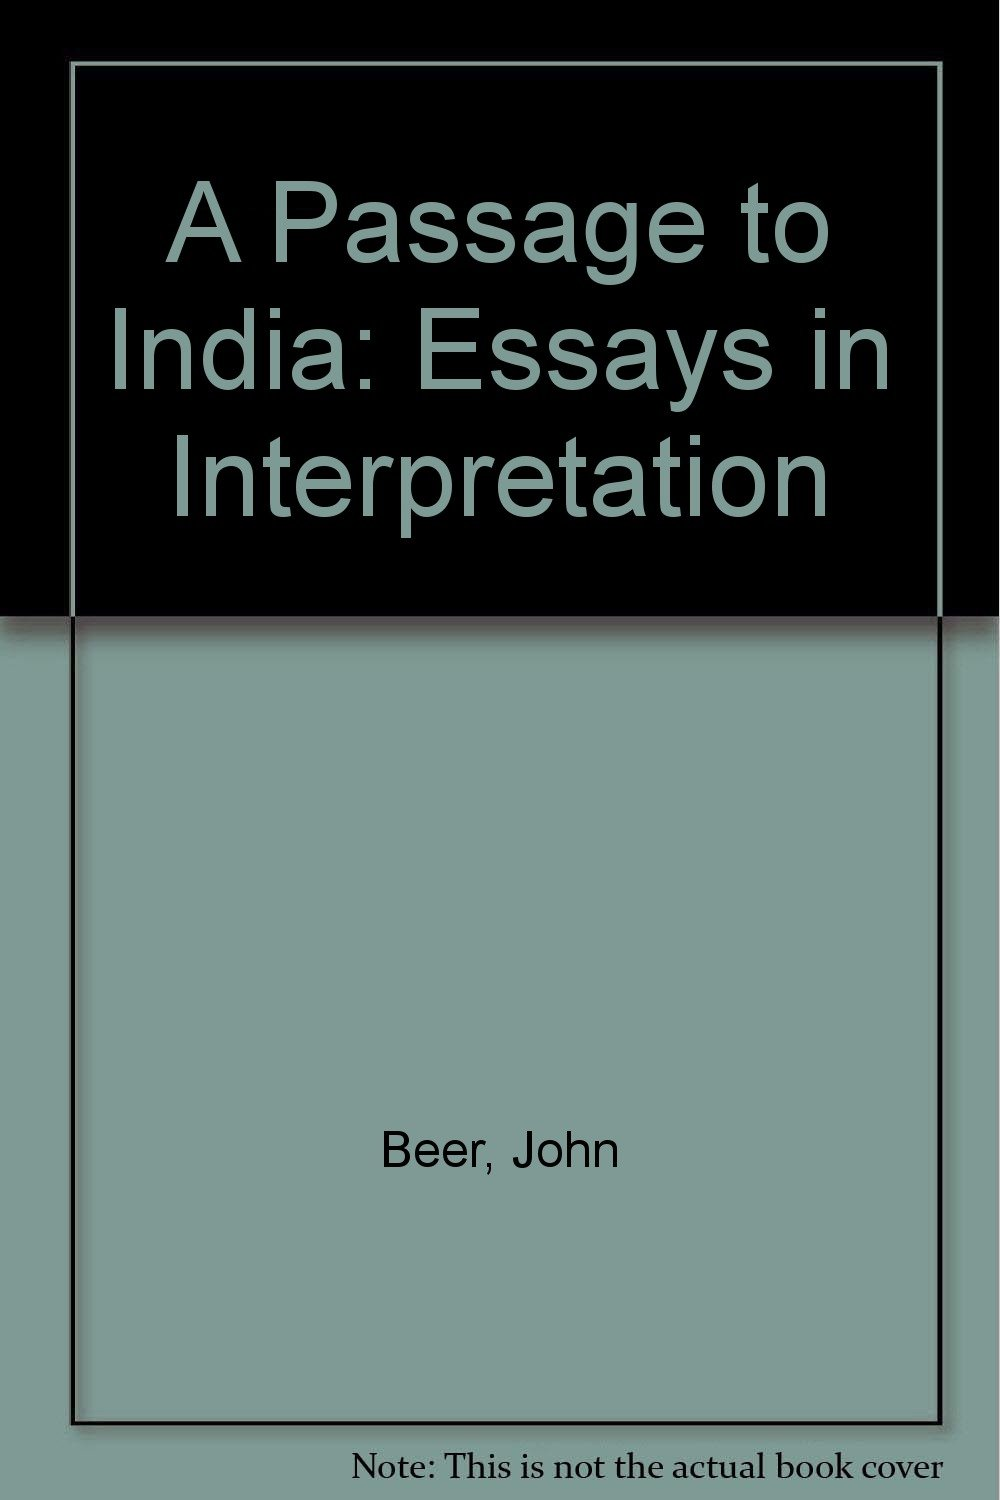 a passage to essay a passage to forster s treatment of  a passage to essays in interpretation amazon co uk john a passage to essays in interpretation